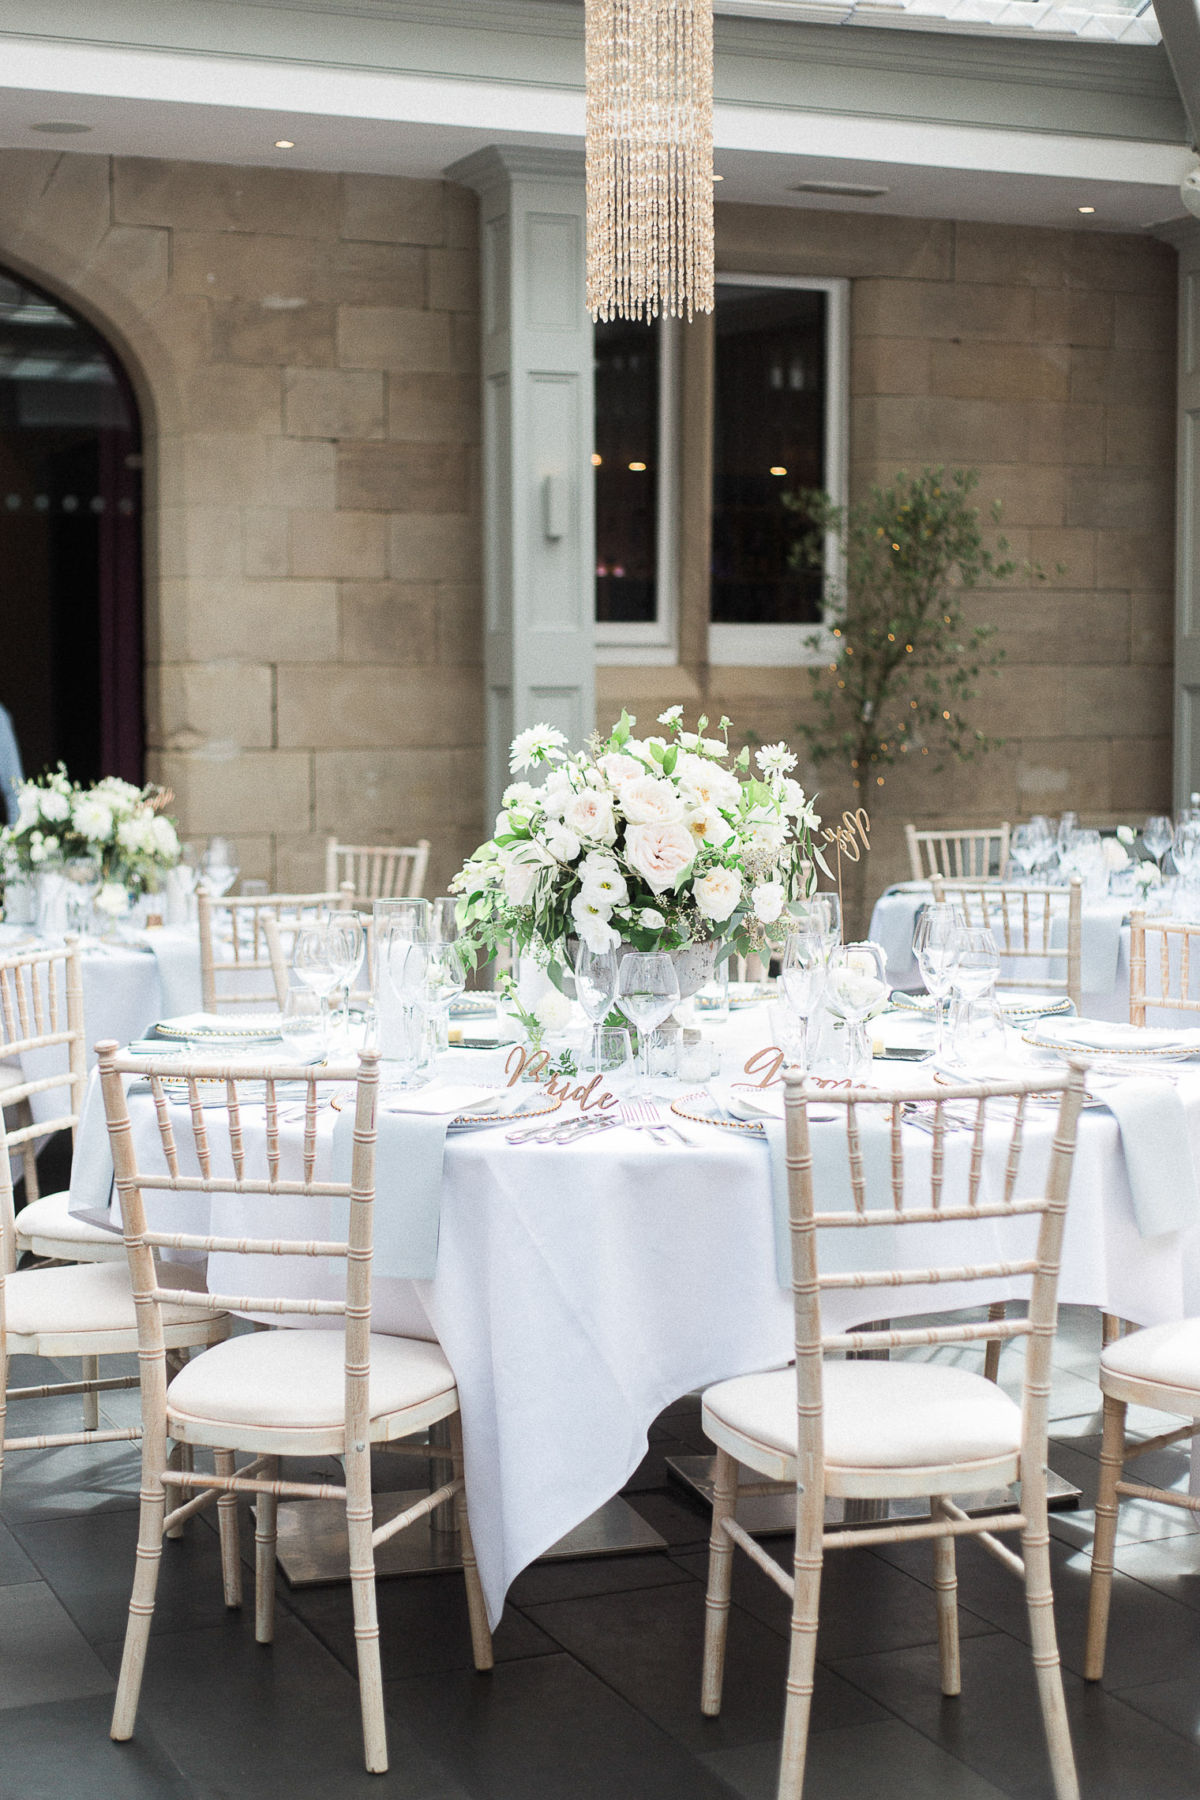 Finding the perfect wedding suppliers